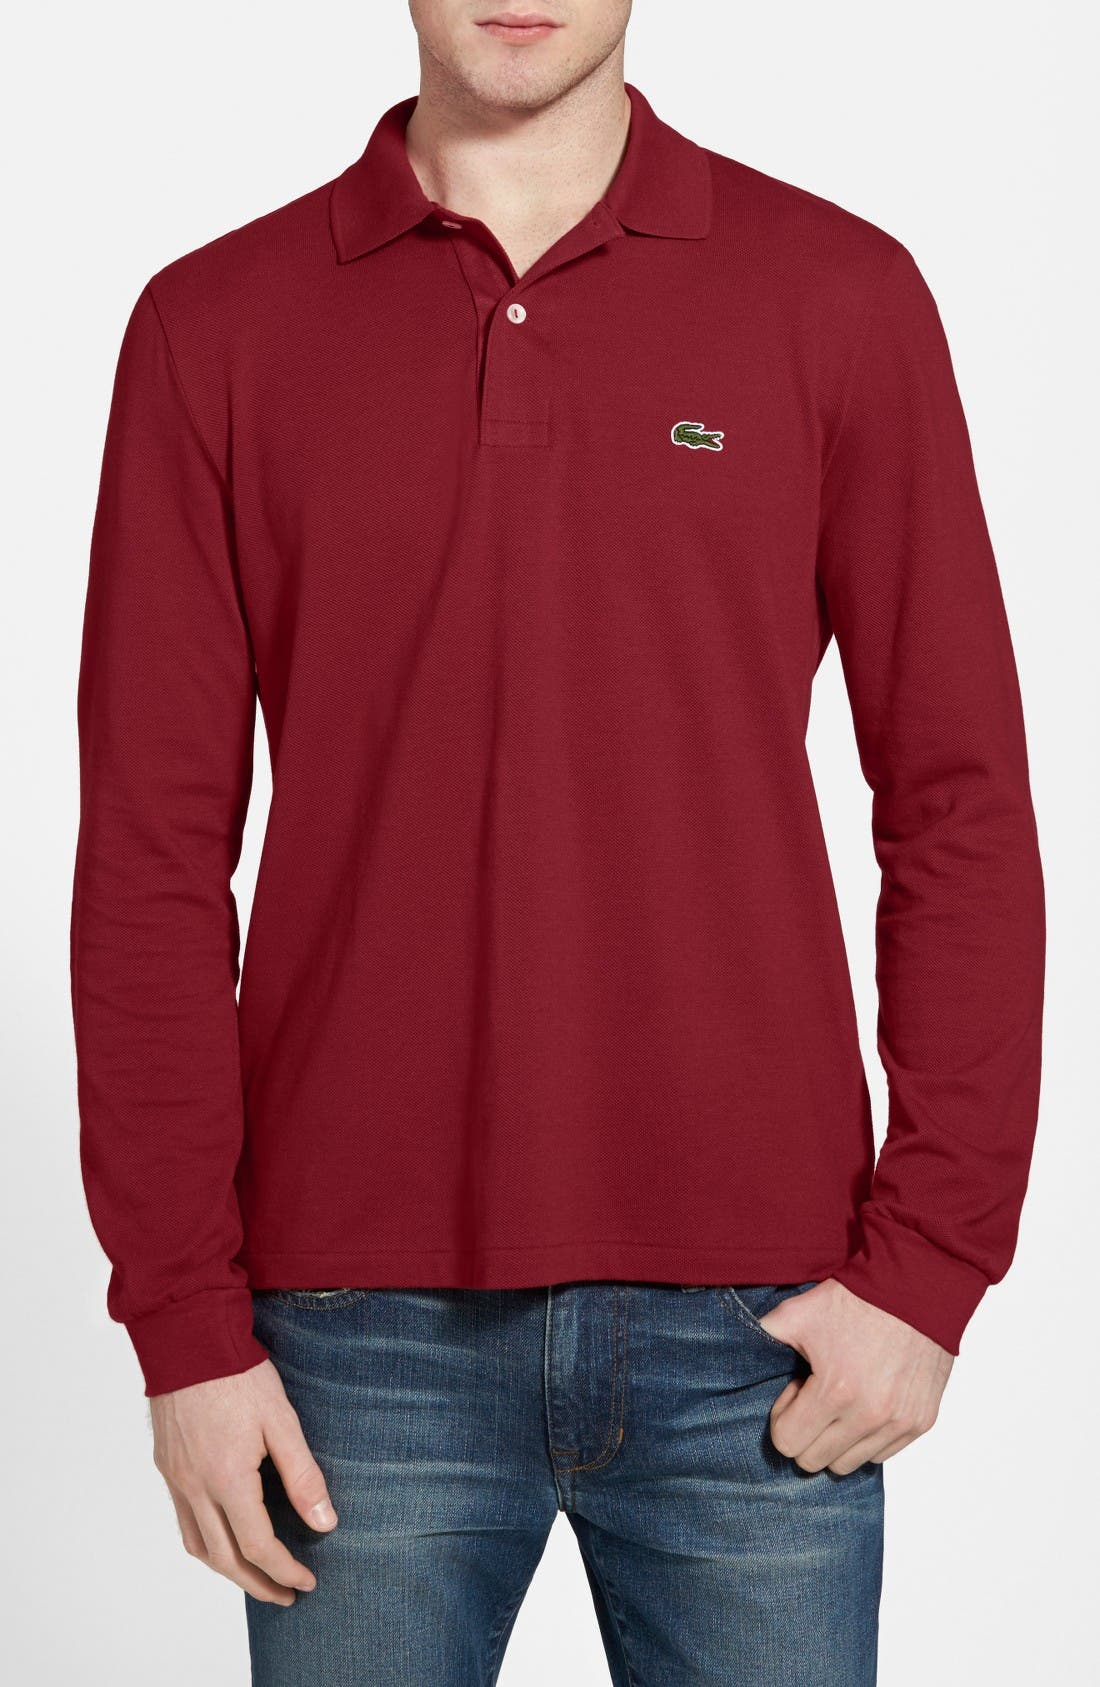 LACOSTE Classic Fit Long Sleeve Pique Polo in Bordeaux Red